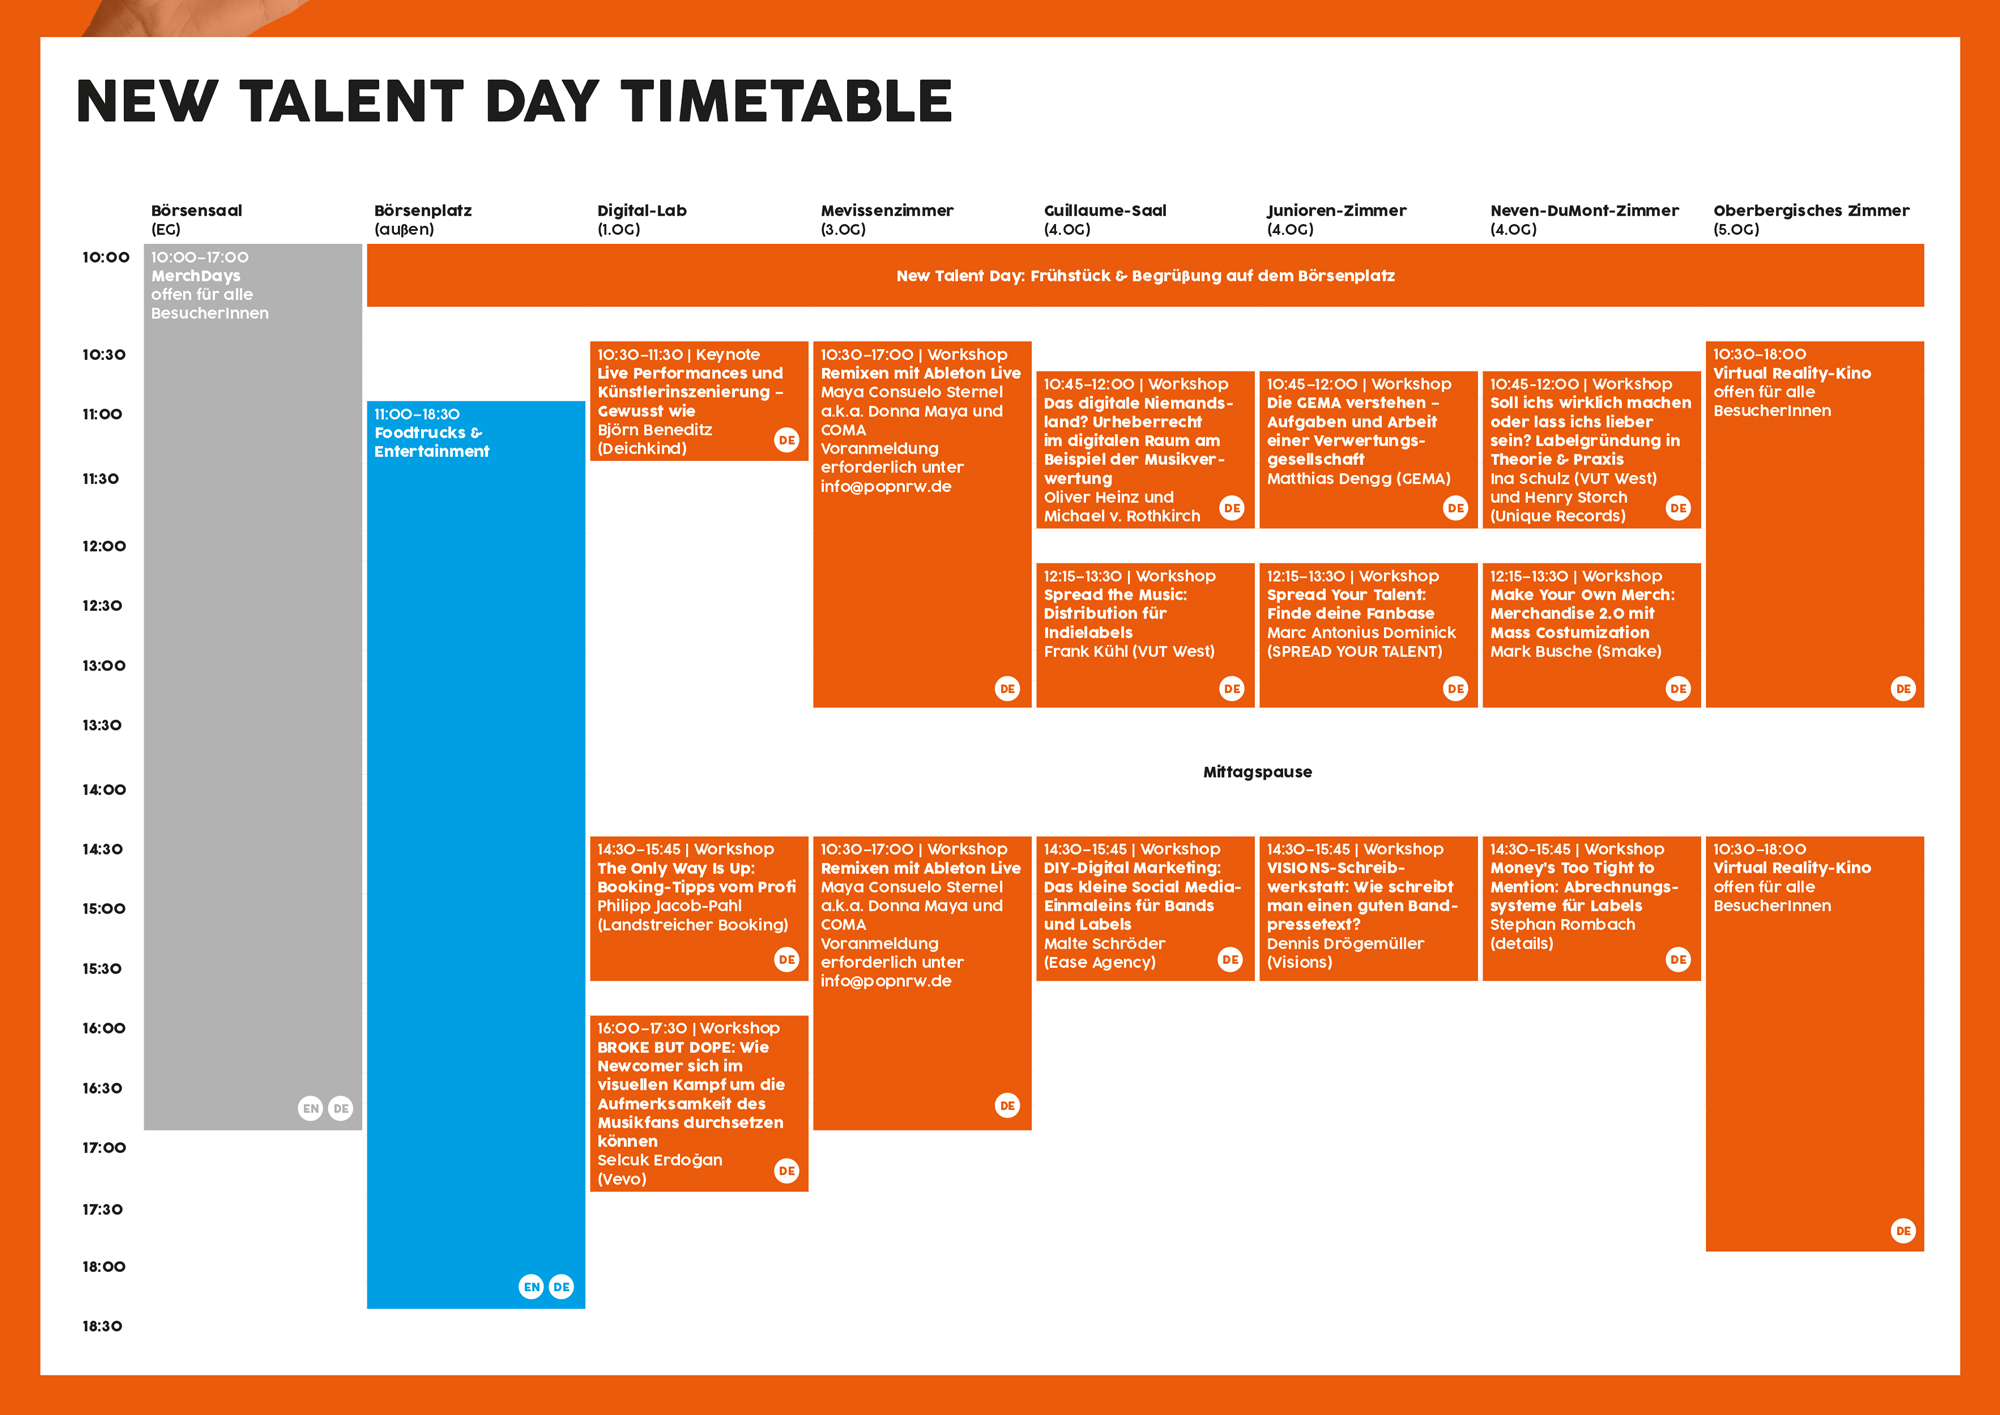 popNRW_NewTalentDay_Timetable